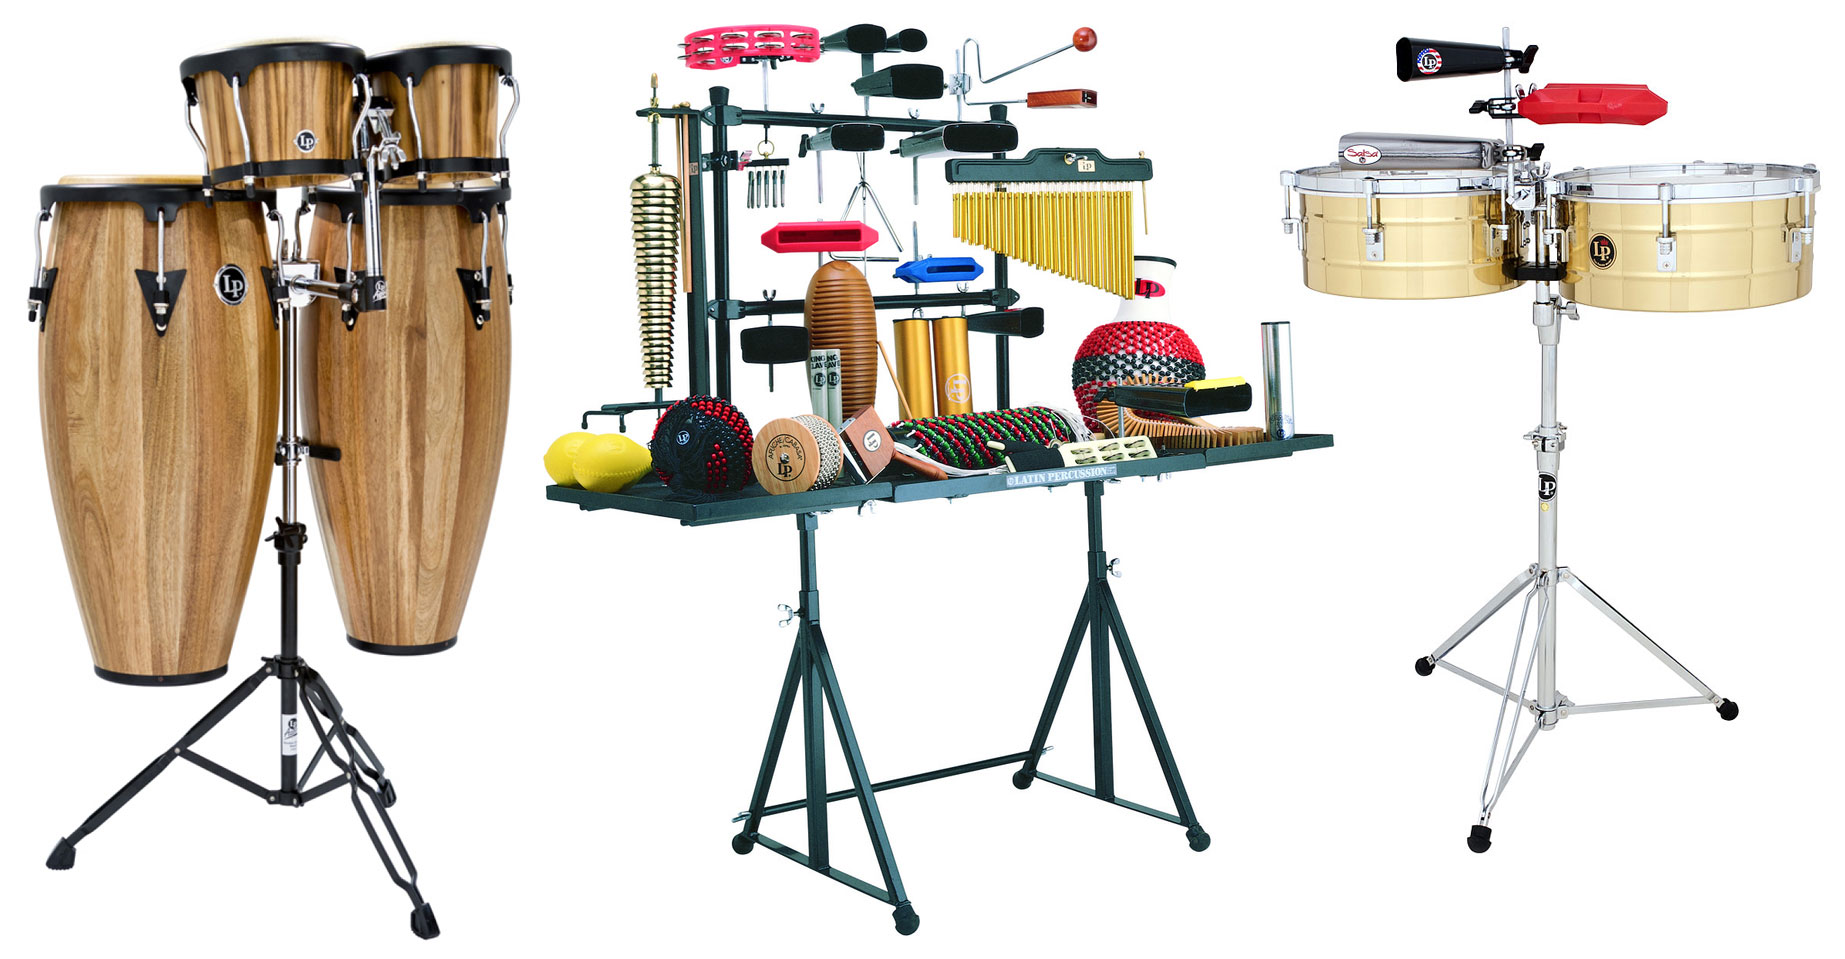 image-8827919-LP-percussion.jpg